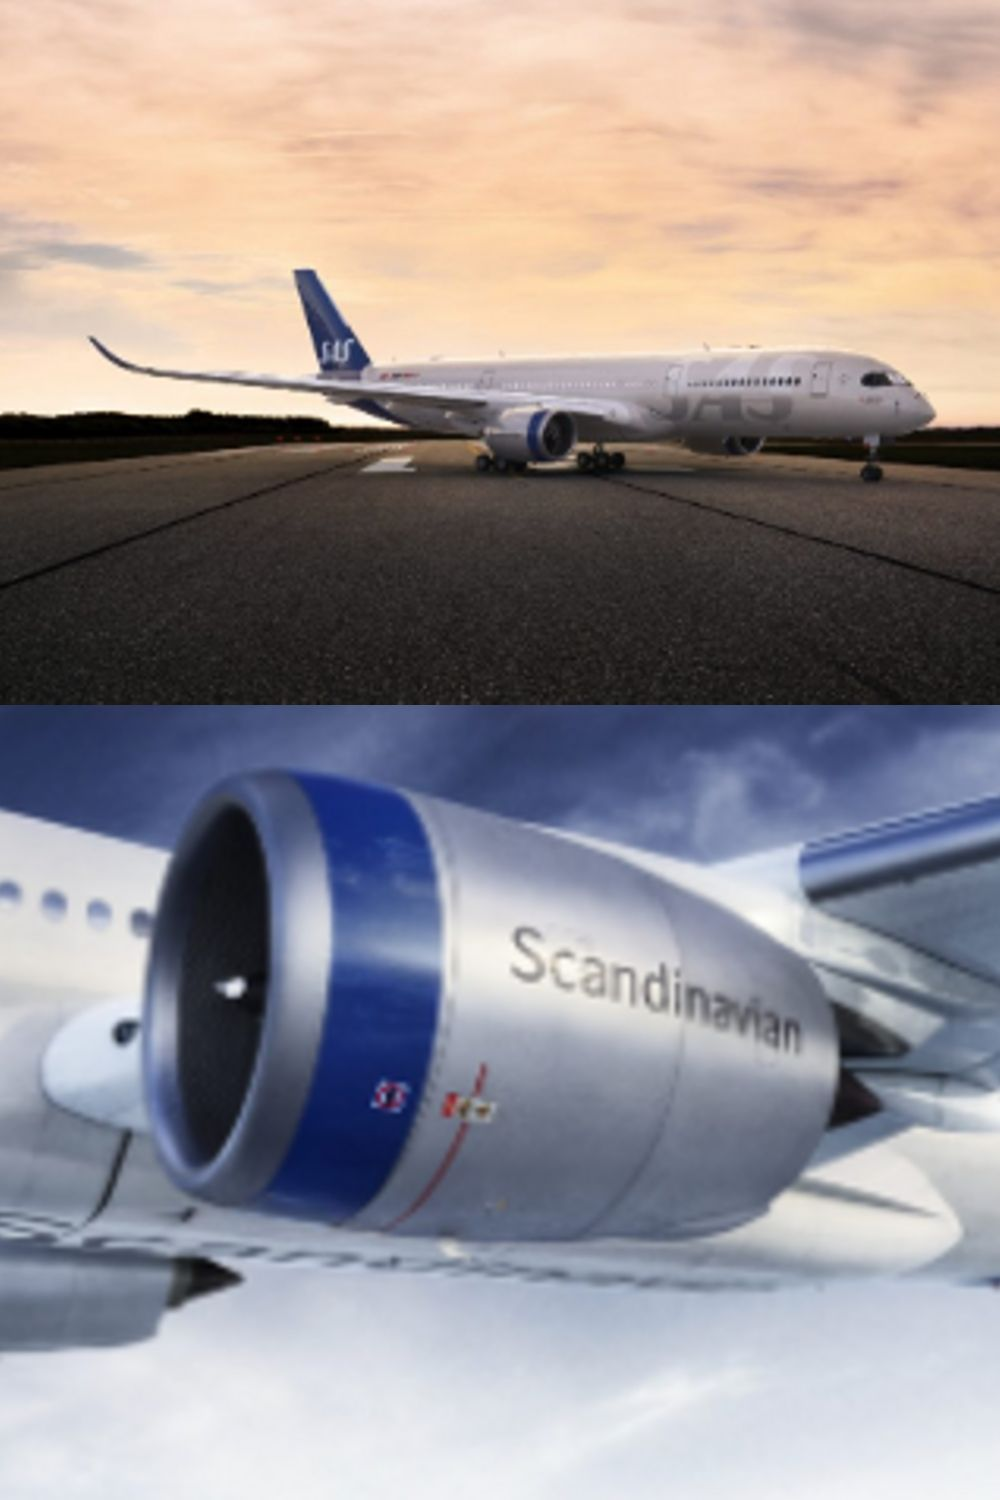 Sas Scandinavian Airlines New Livery Unveiled Captainjetson In 2020 Sas Airlines Airlines Sas